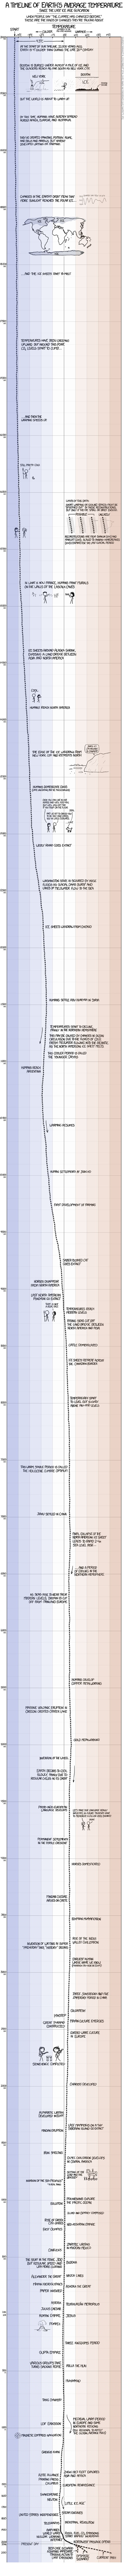 xkcd-timeline-of-earth-temperature